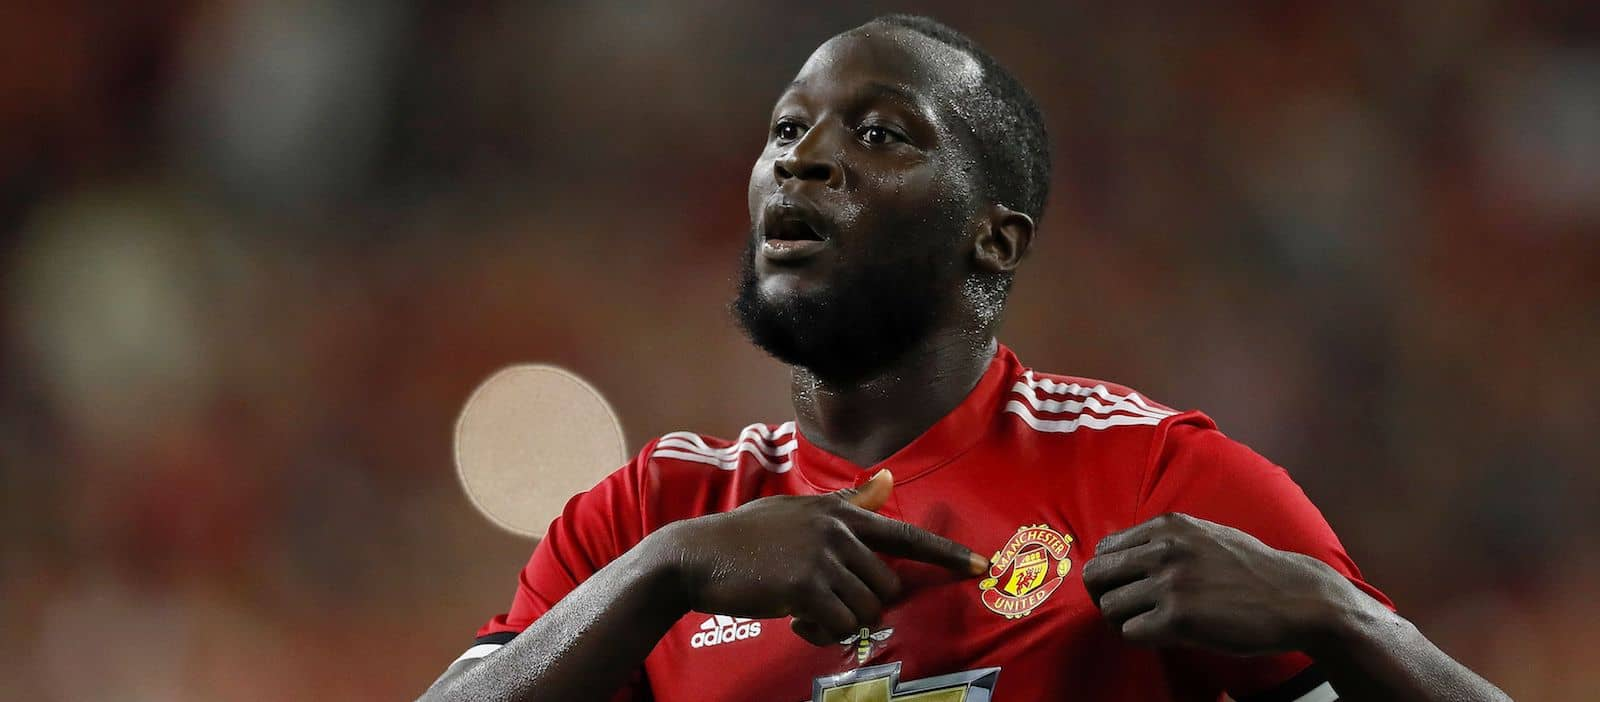 Romelu Lukaku sends message to Manchester United fans after scoring against Manchester City